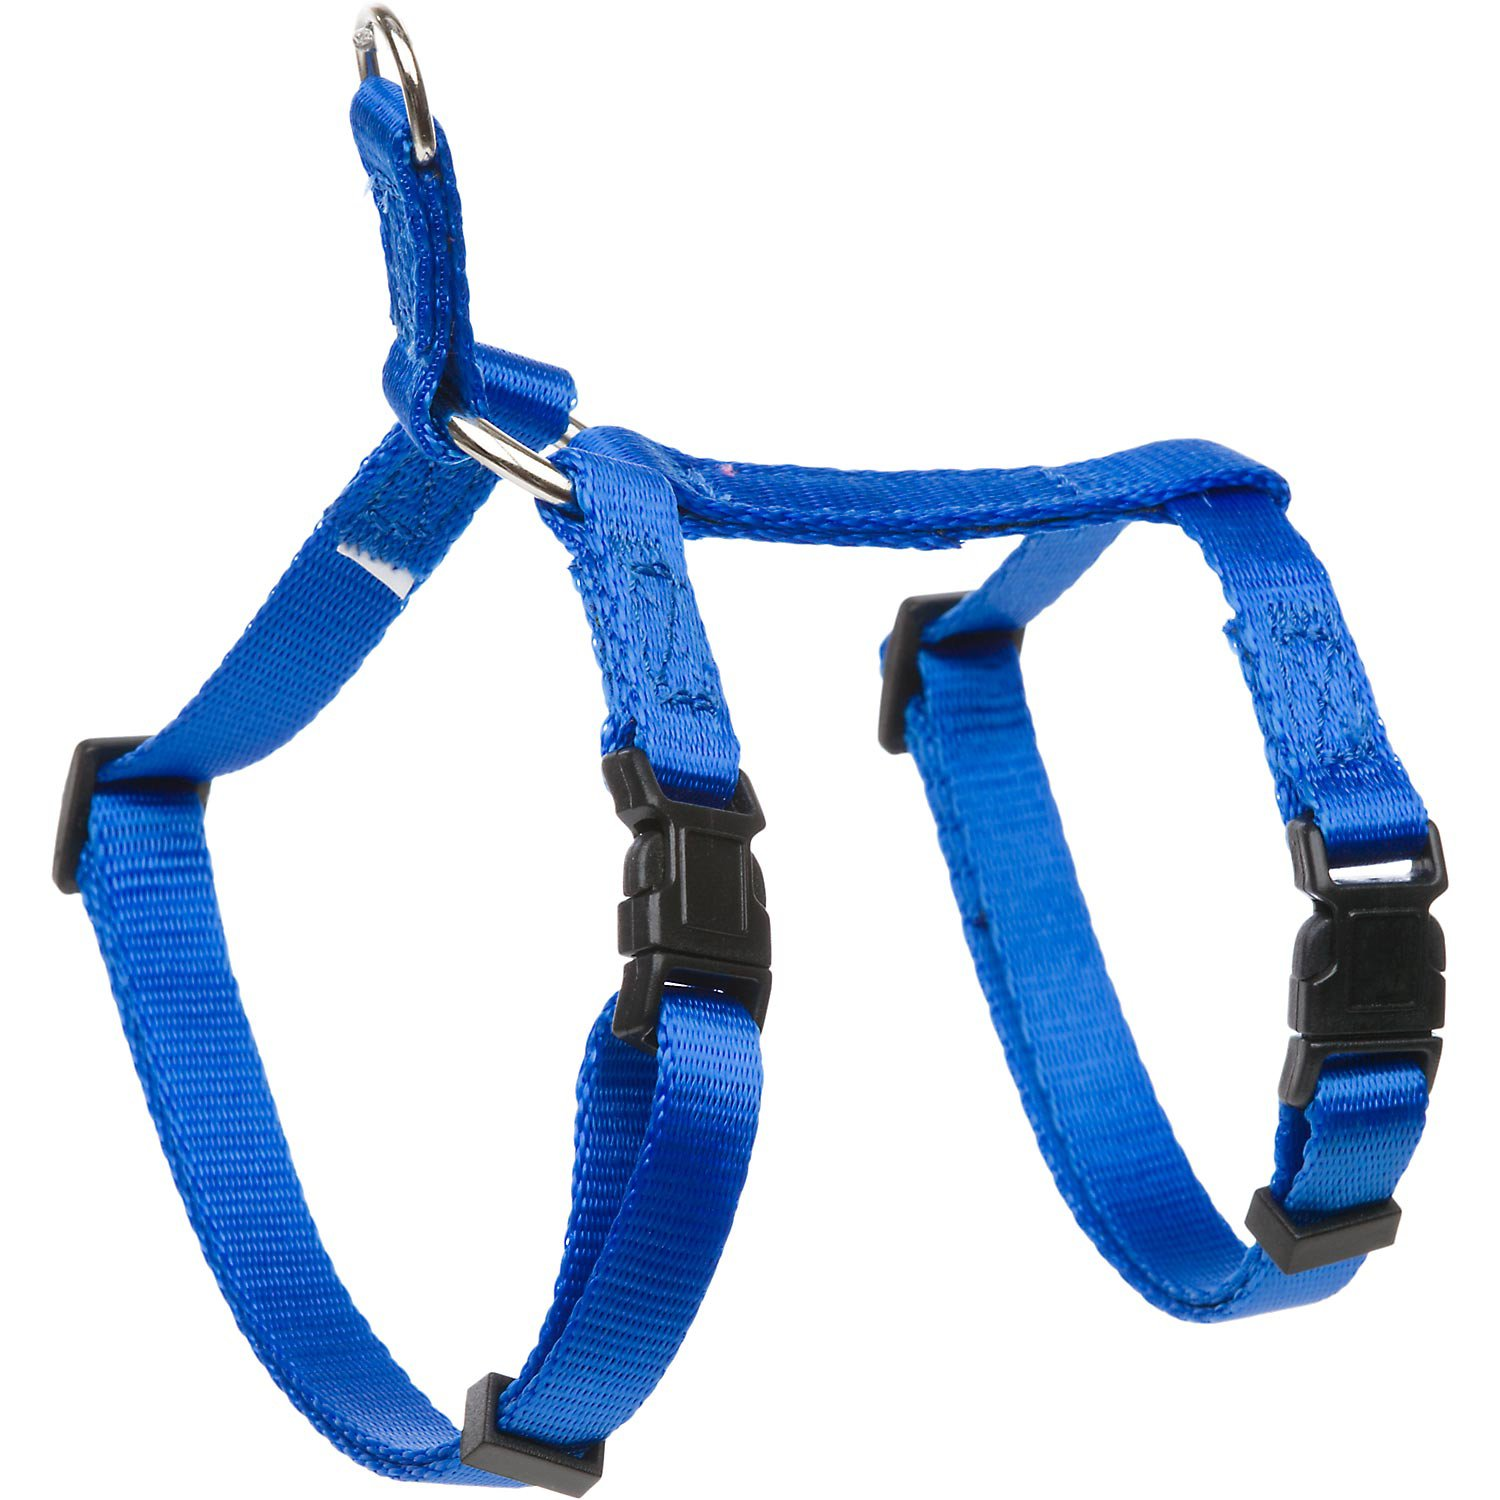 Petco Classic Nylon Harness in Blue